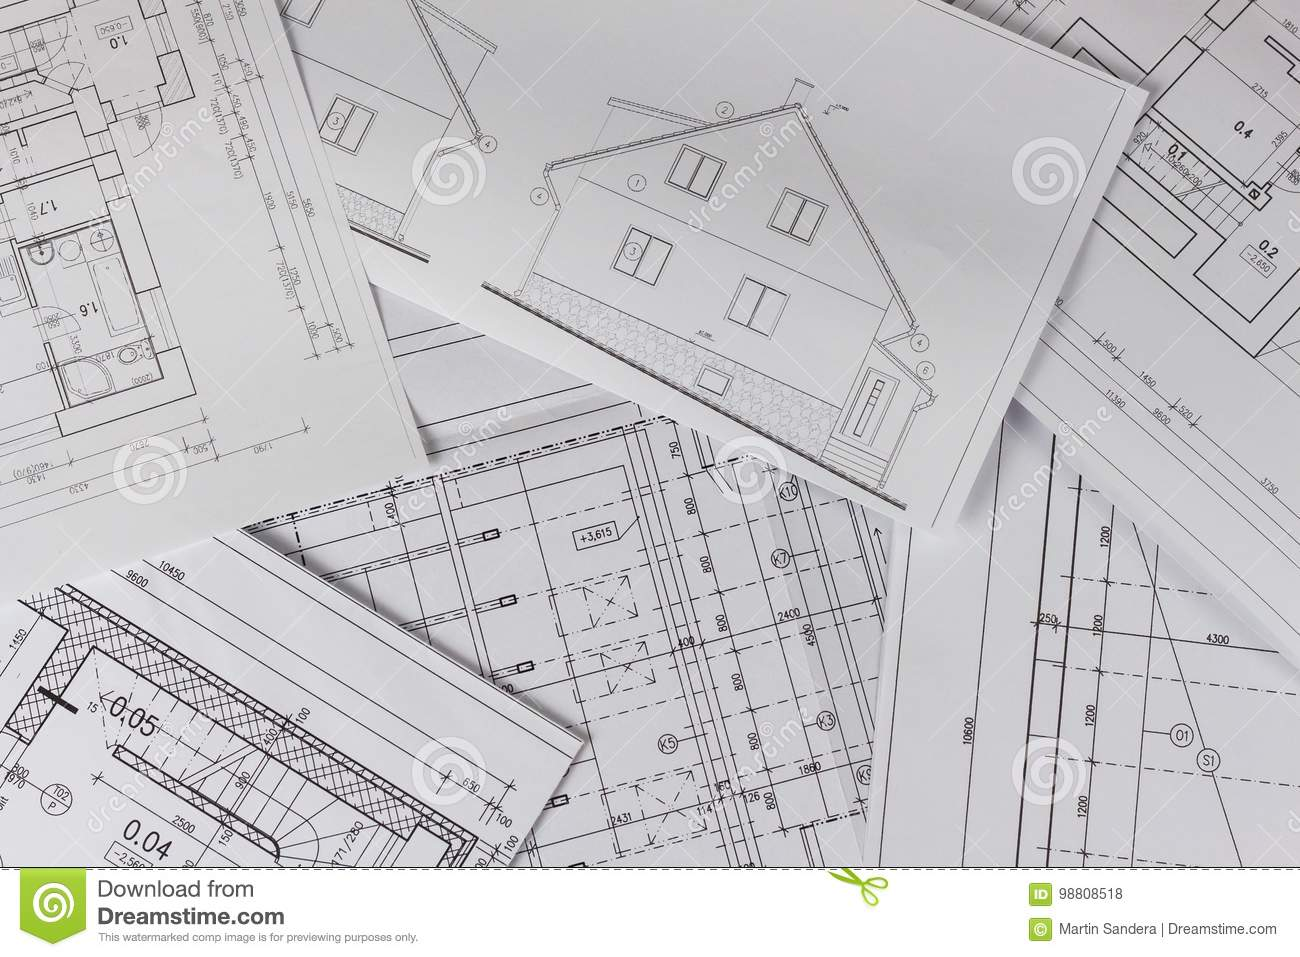 Plans Of Building Architectural Project Floor Plan Designed Building On The Drawing Engineering And Technical Drawing Part Of Stock Photo Image Of Engineer Building 98808518